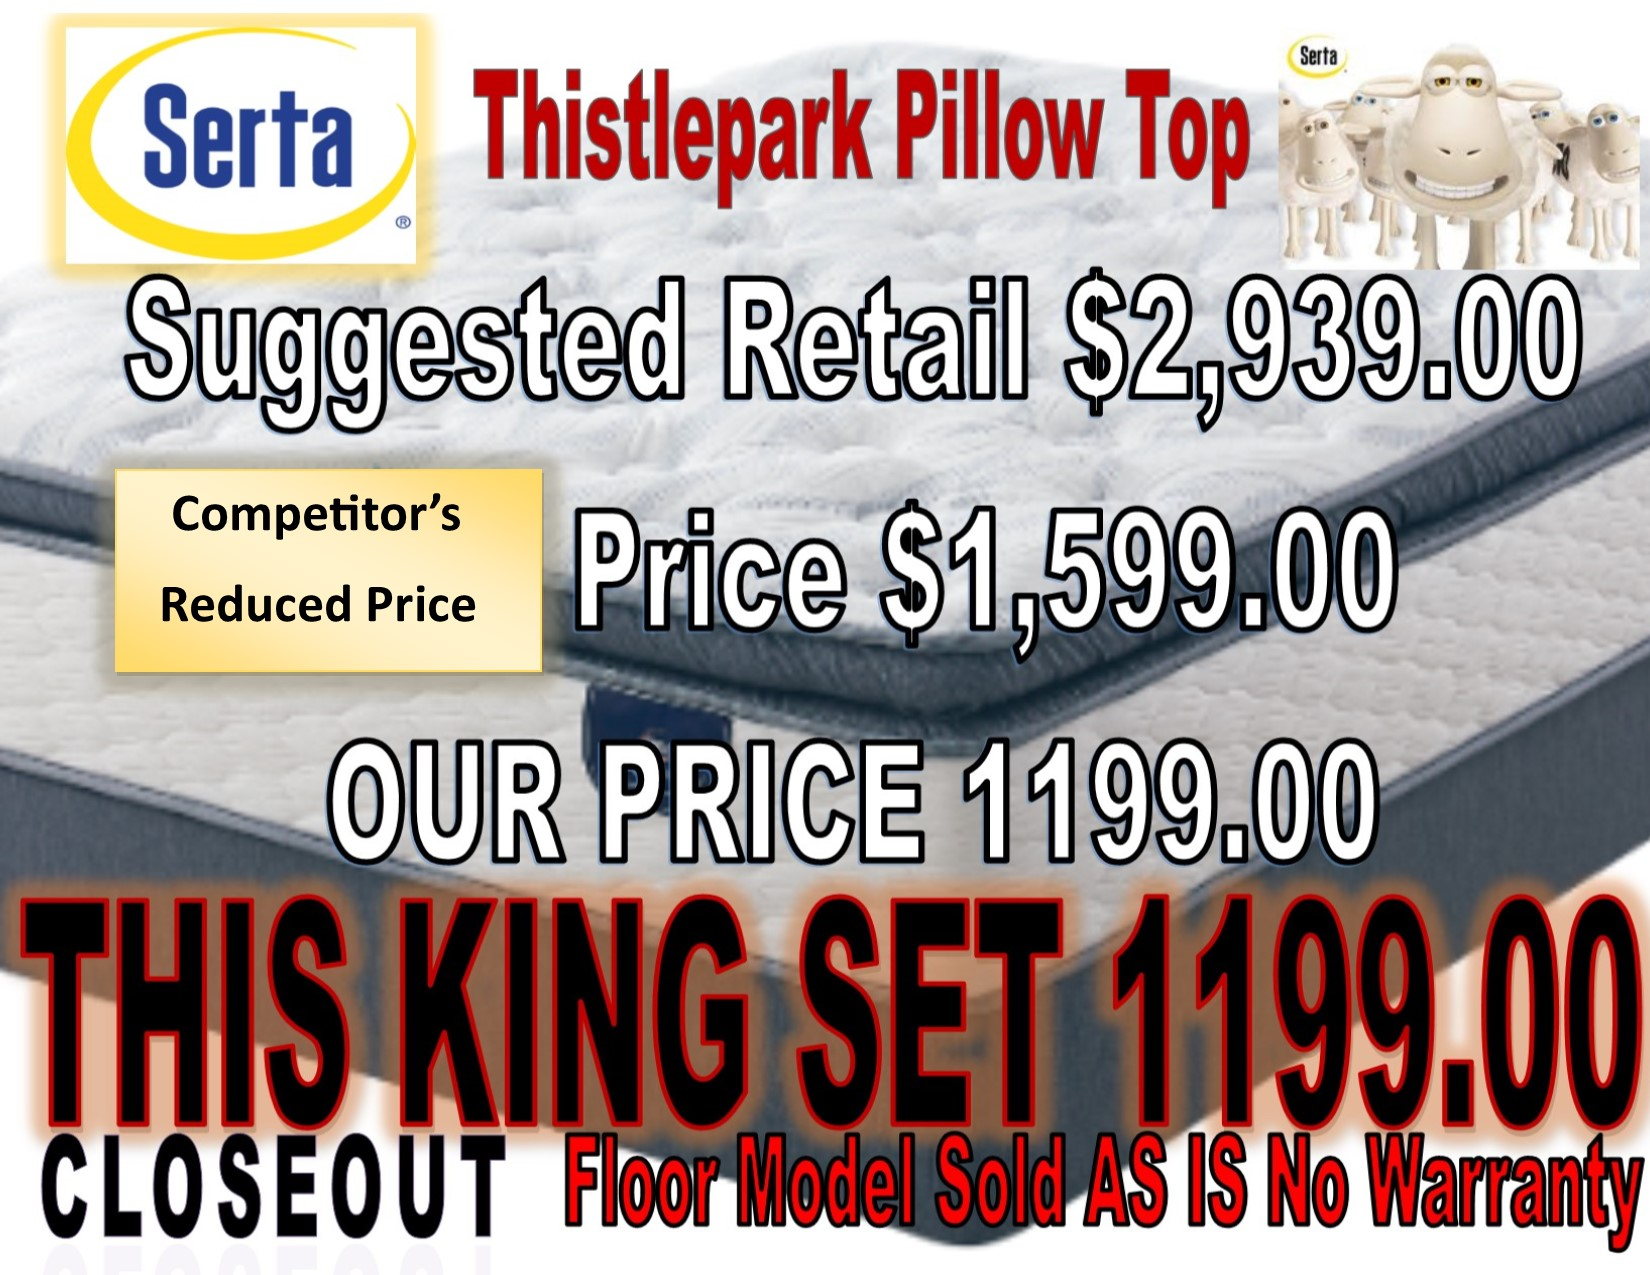 Thistlepark Pillow Top